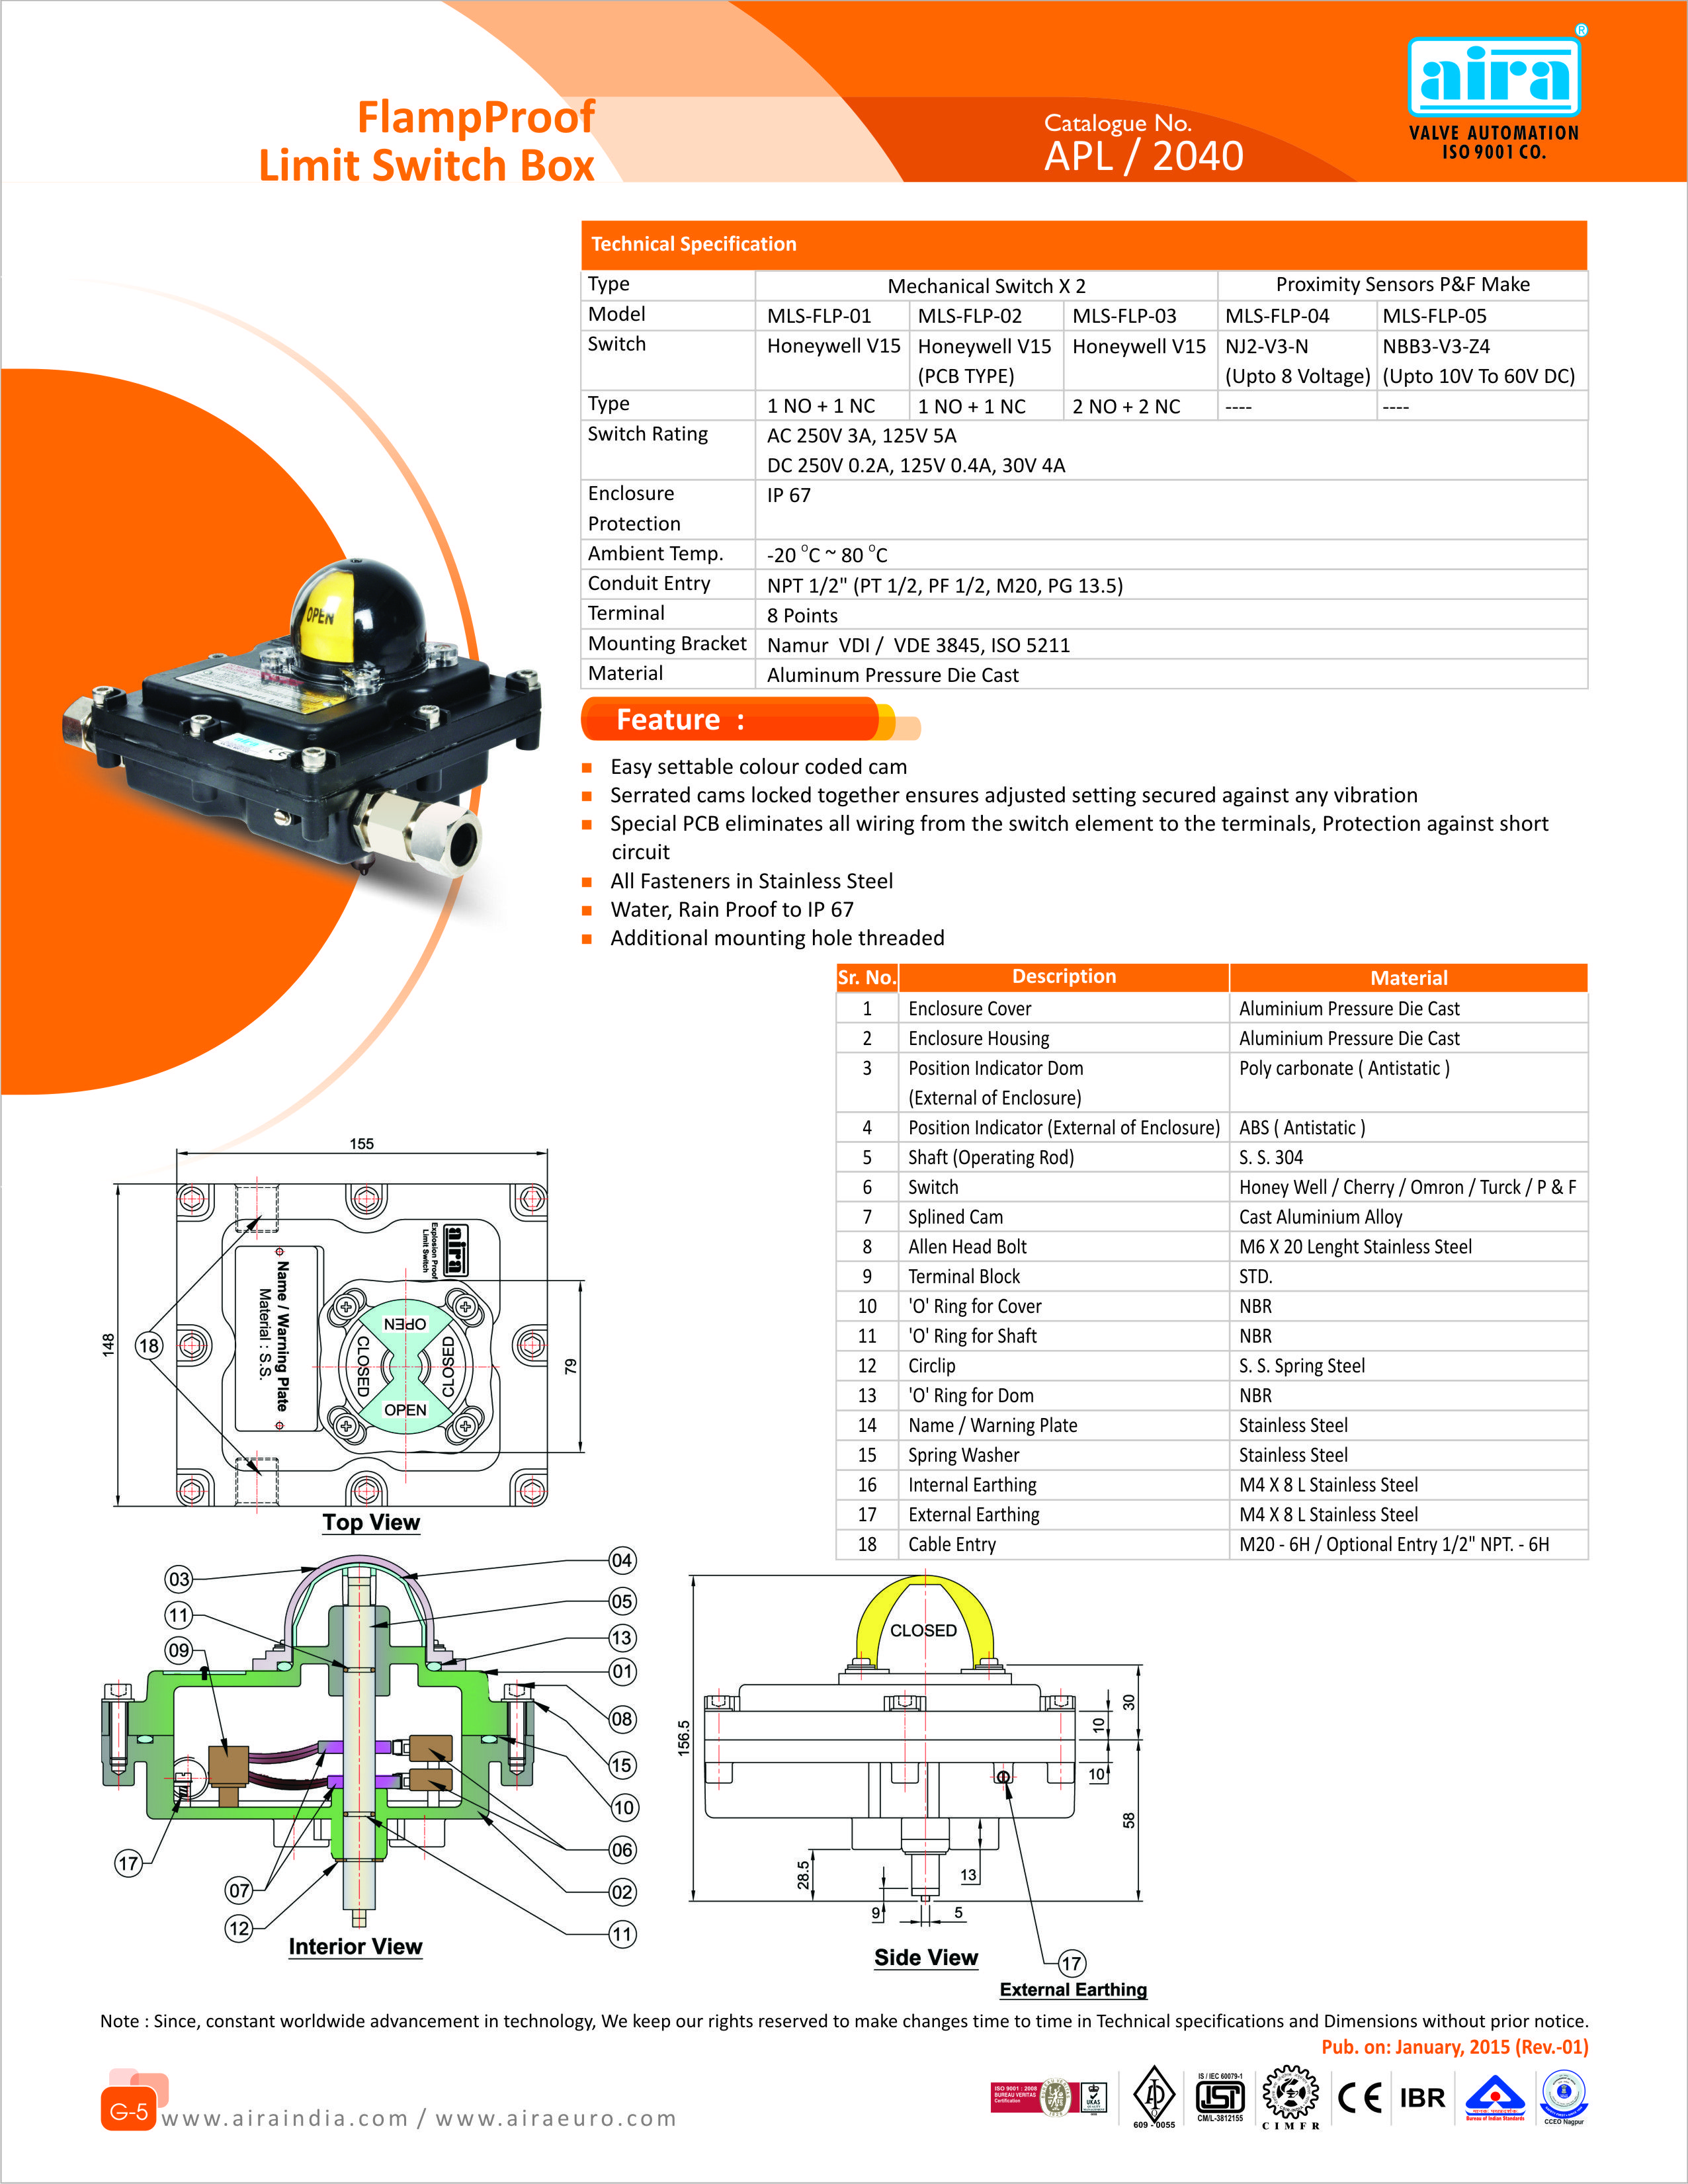 Flamproof Limit Switch Box For More Information can Visit